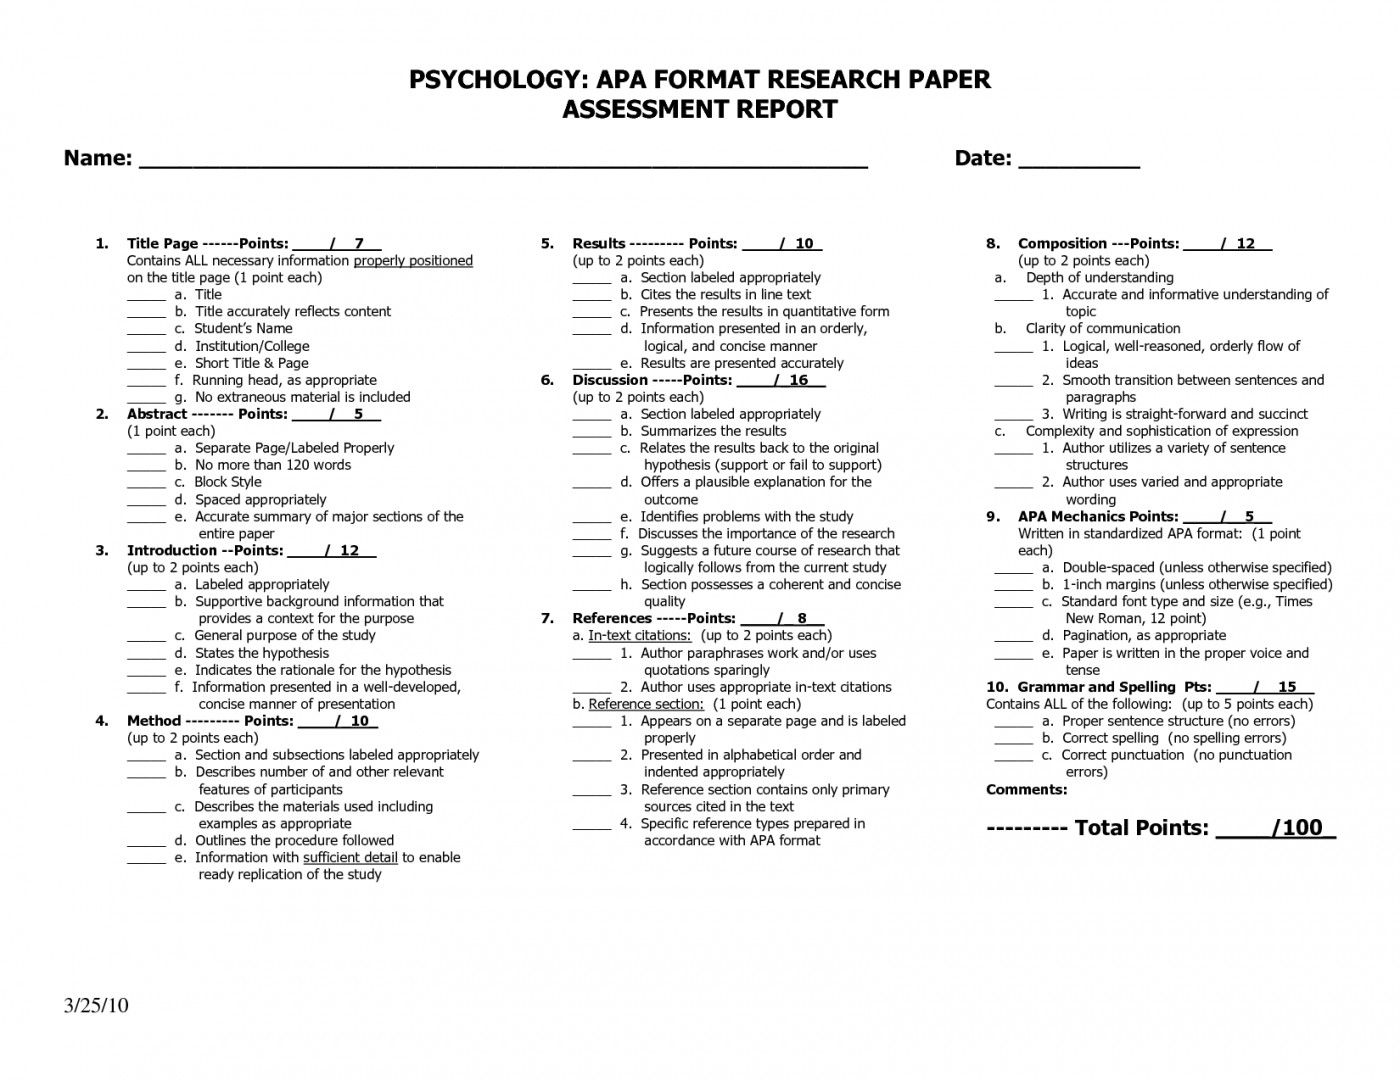 021 Research Paper Apa Format For Psychology Striking Topics On Dreams Depression High School Students 1400